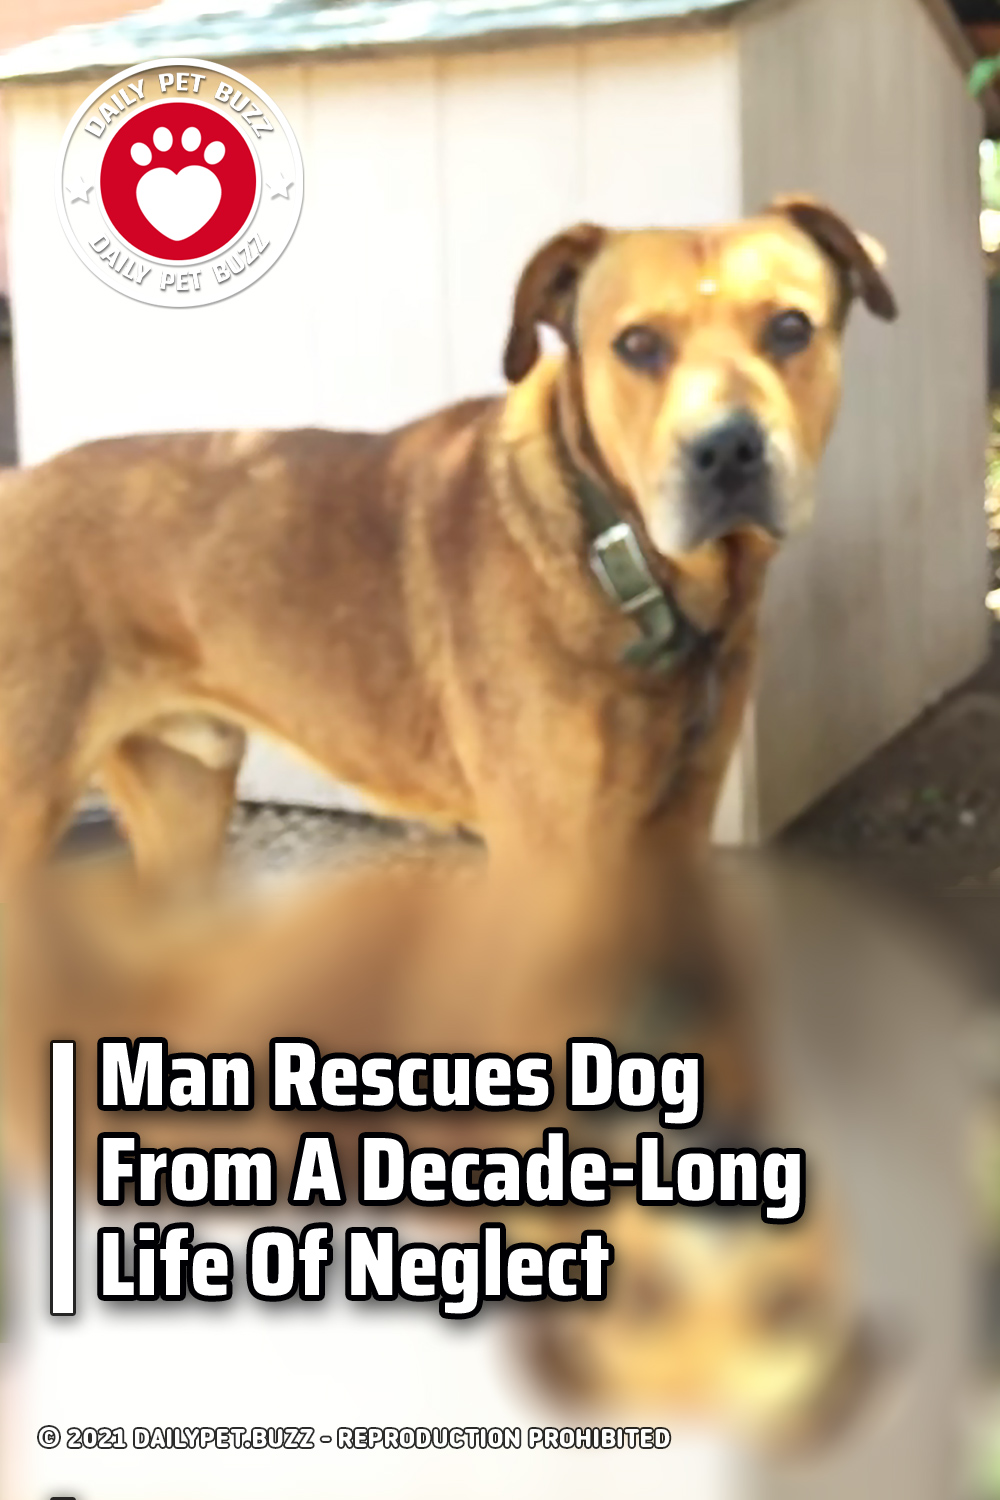 Man Rescues Dog From A Decade-Long Life Of Neglect